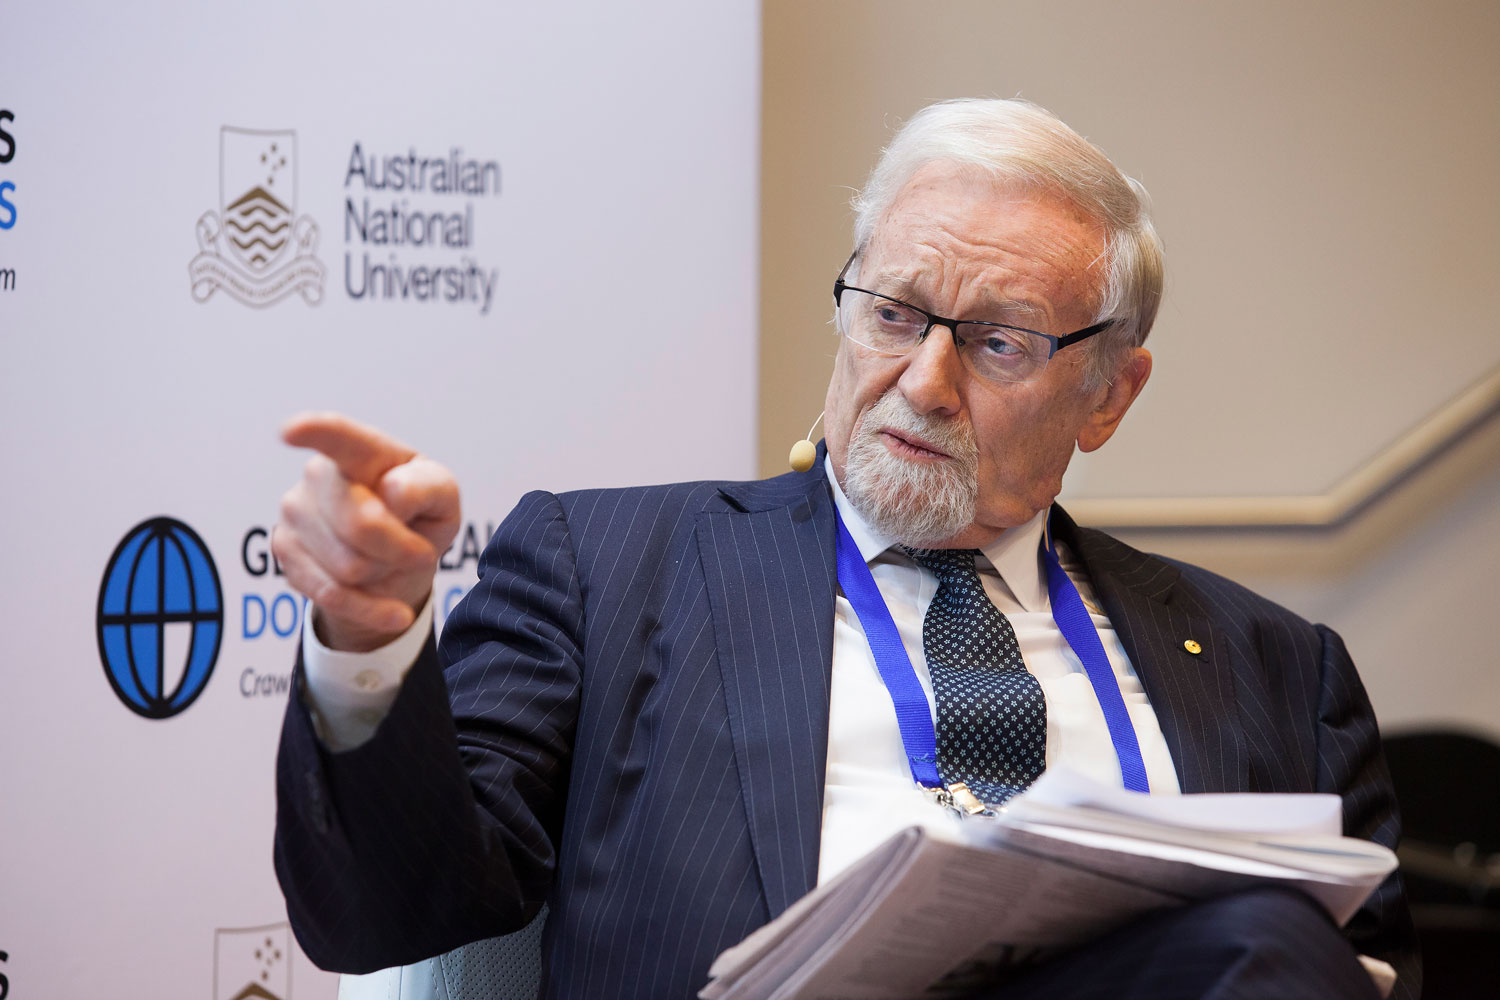 Australian politician Gareth Evans. Story on the Cheryl Kernot Affair, written by John Harrison, UQ academic, historian and journalist. (The University of Queensland)